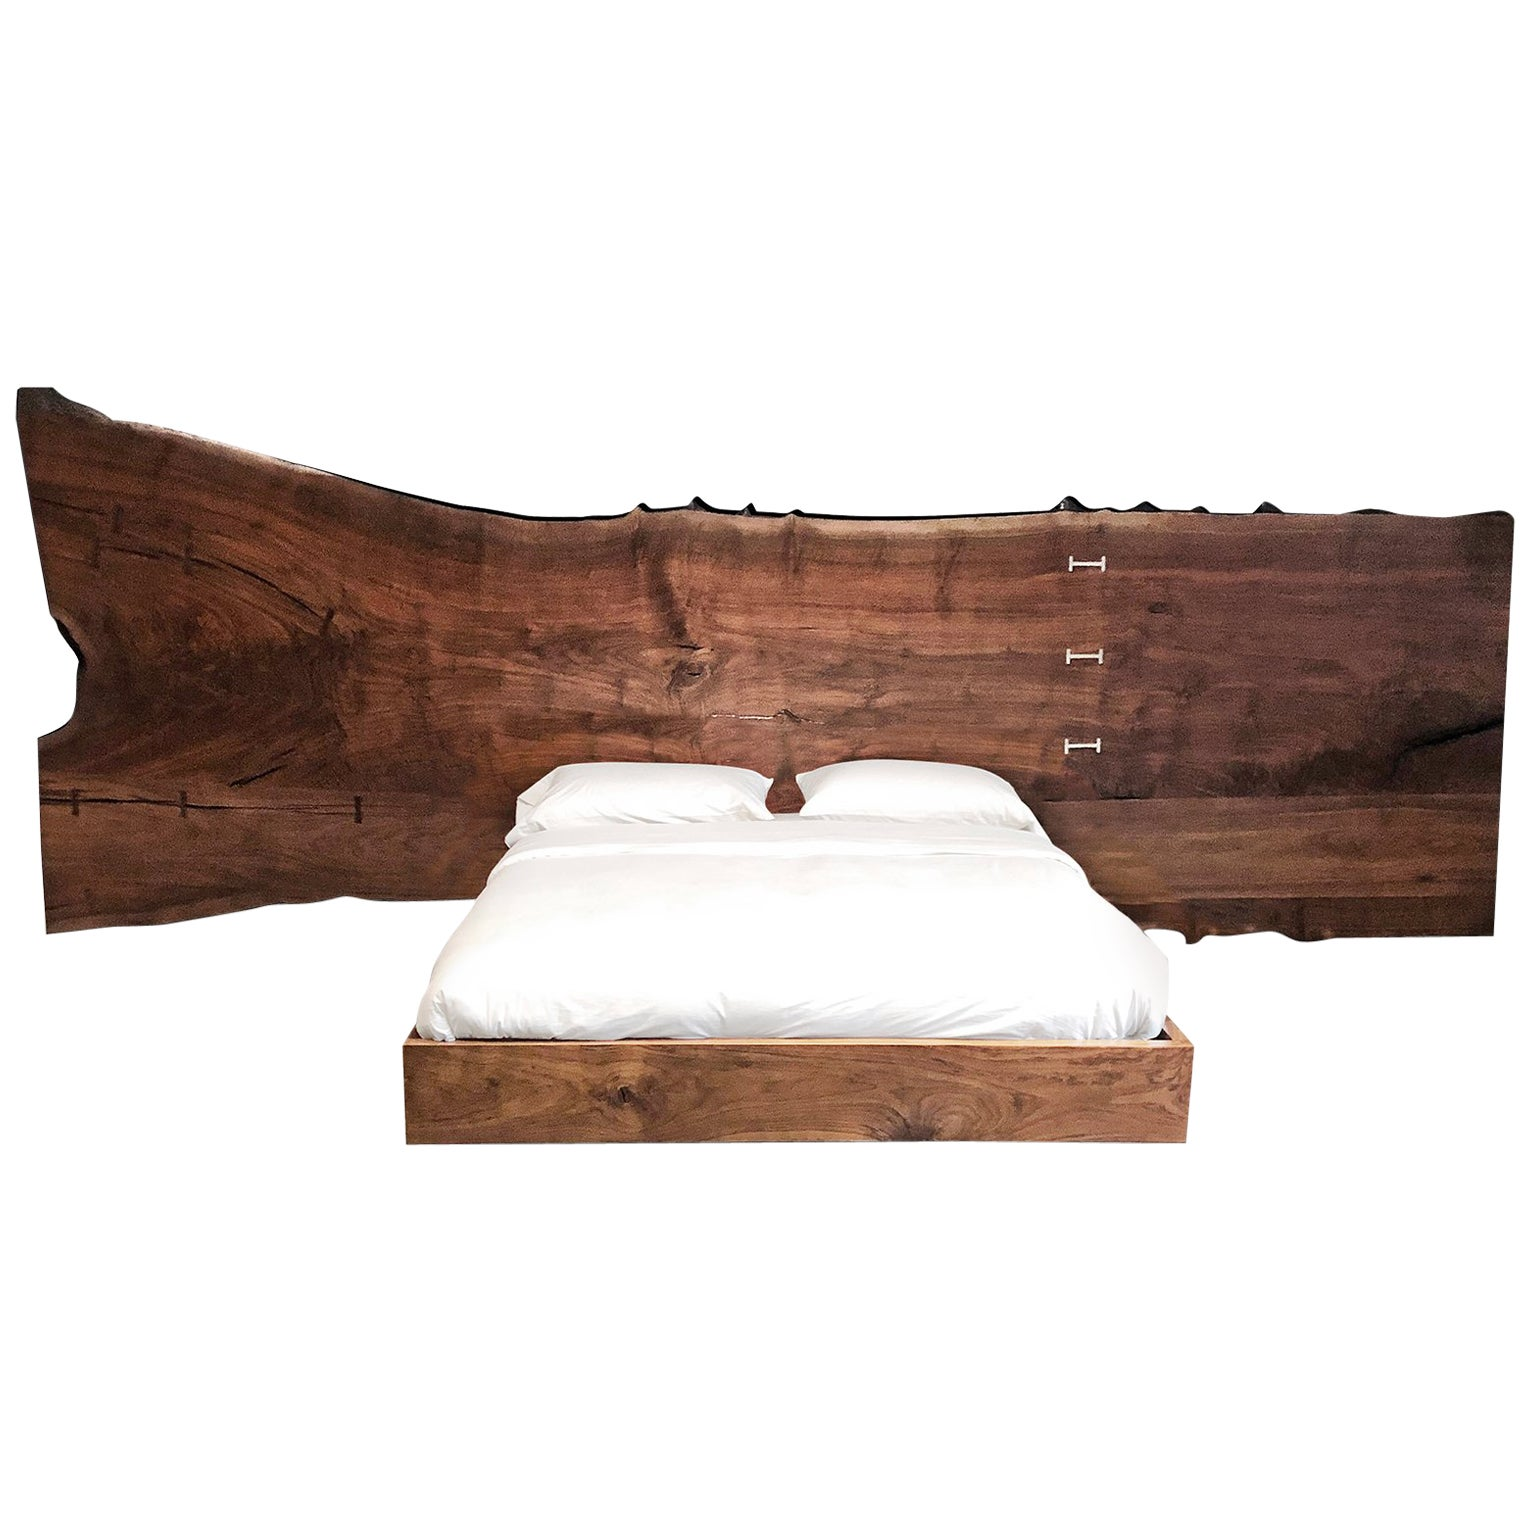 Hudson Bed (walnut slab) By Barlas Baylar